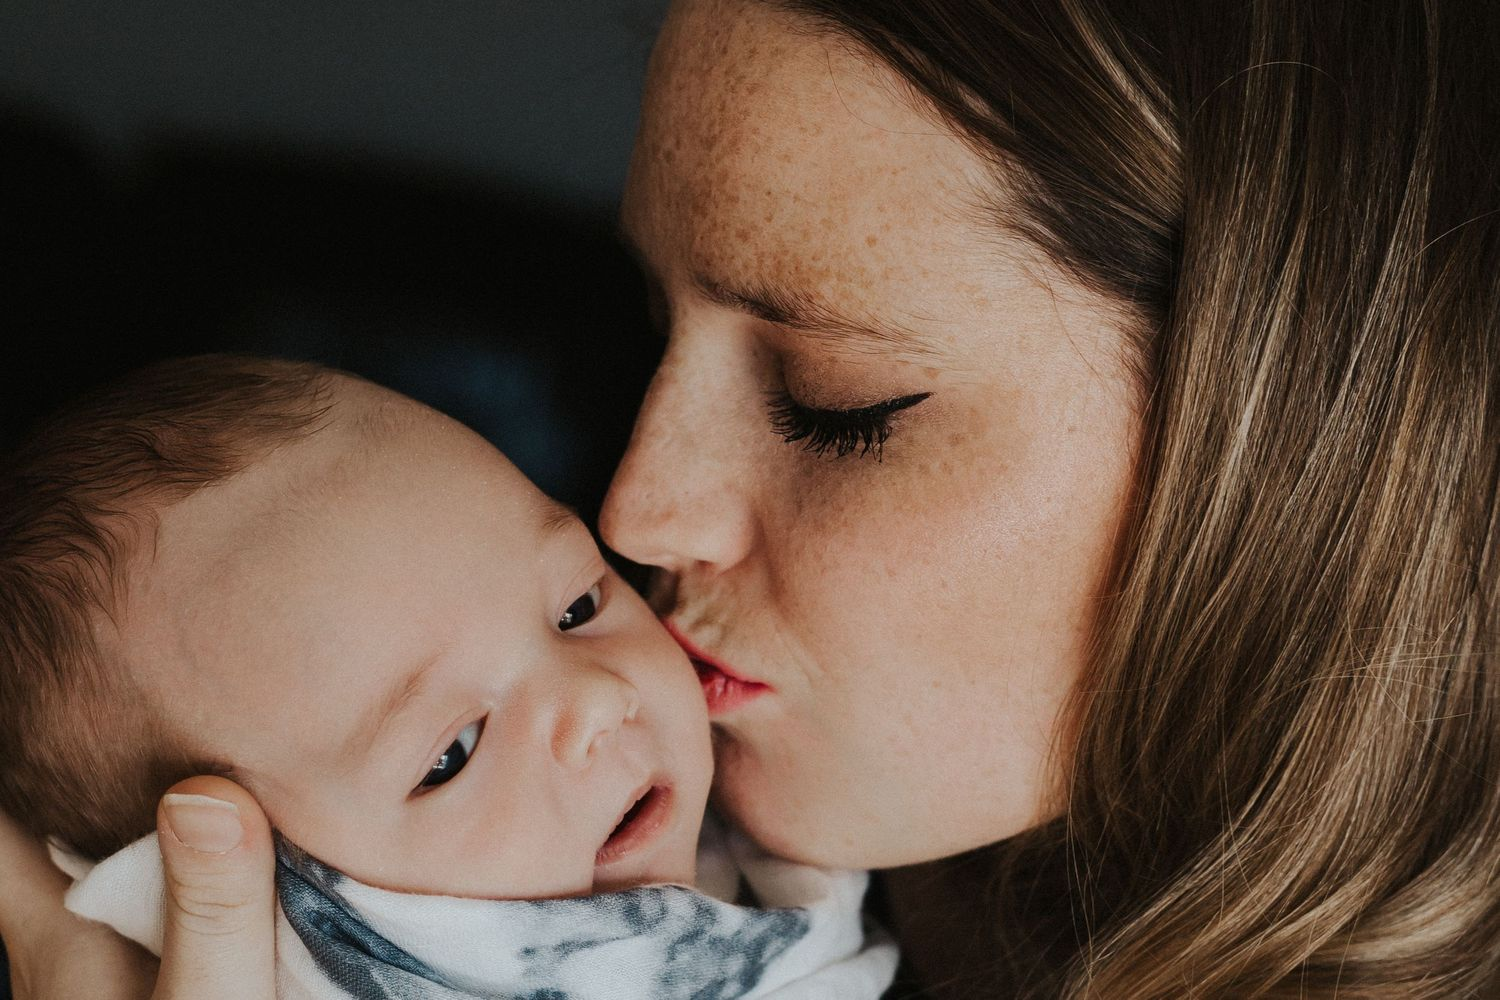 mother kisses baby boy on the cheek while holding him in her arms